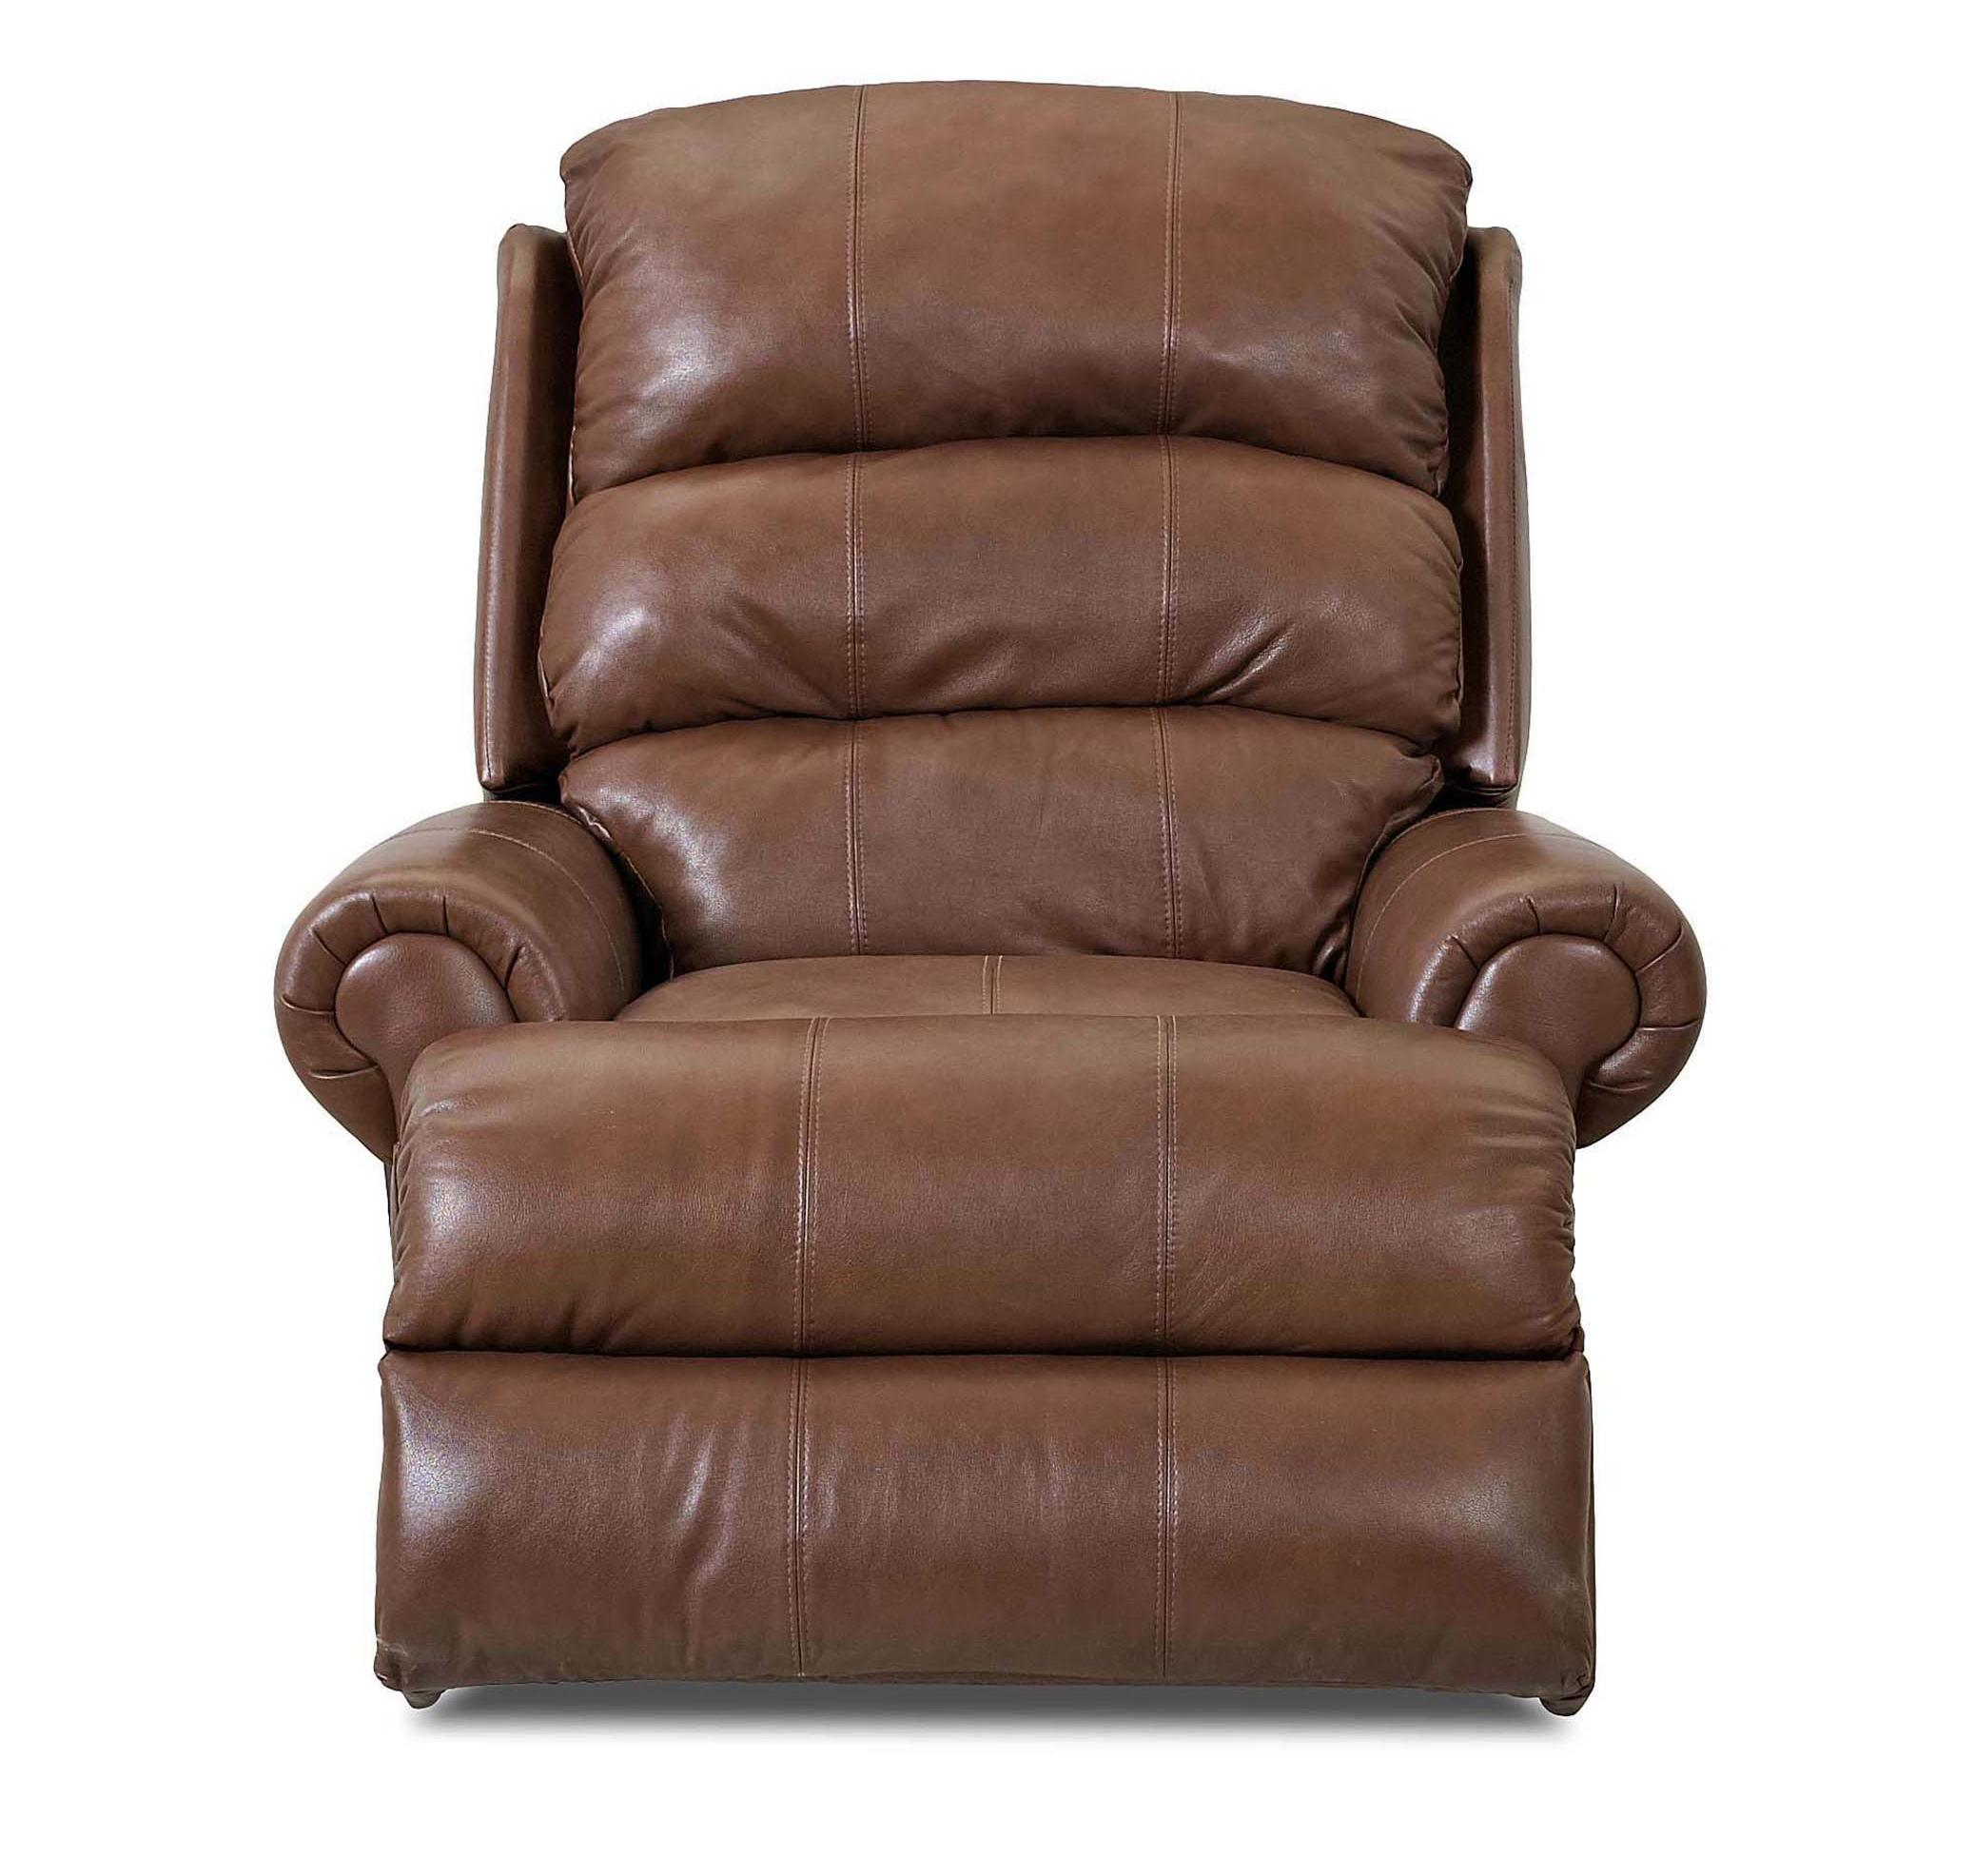 Klaussner Norman Transitional Gliding Reclining Chair - Item Number: LV91003H GLRC